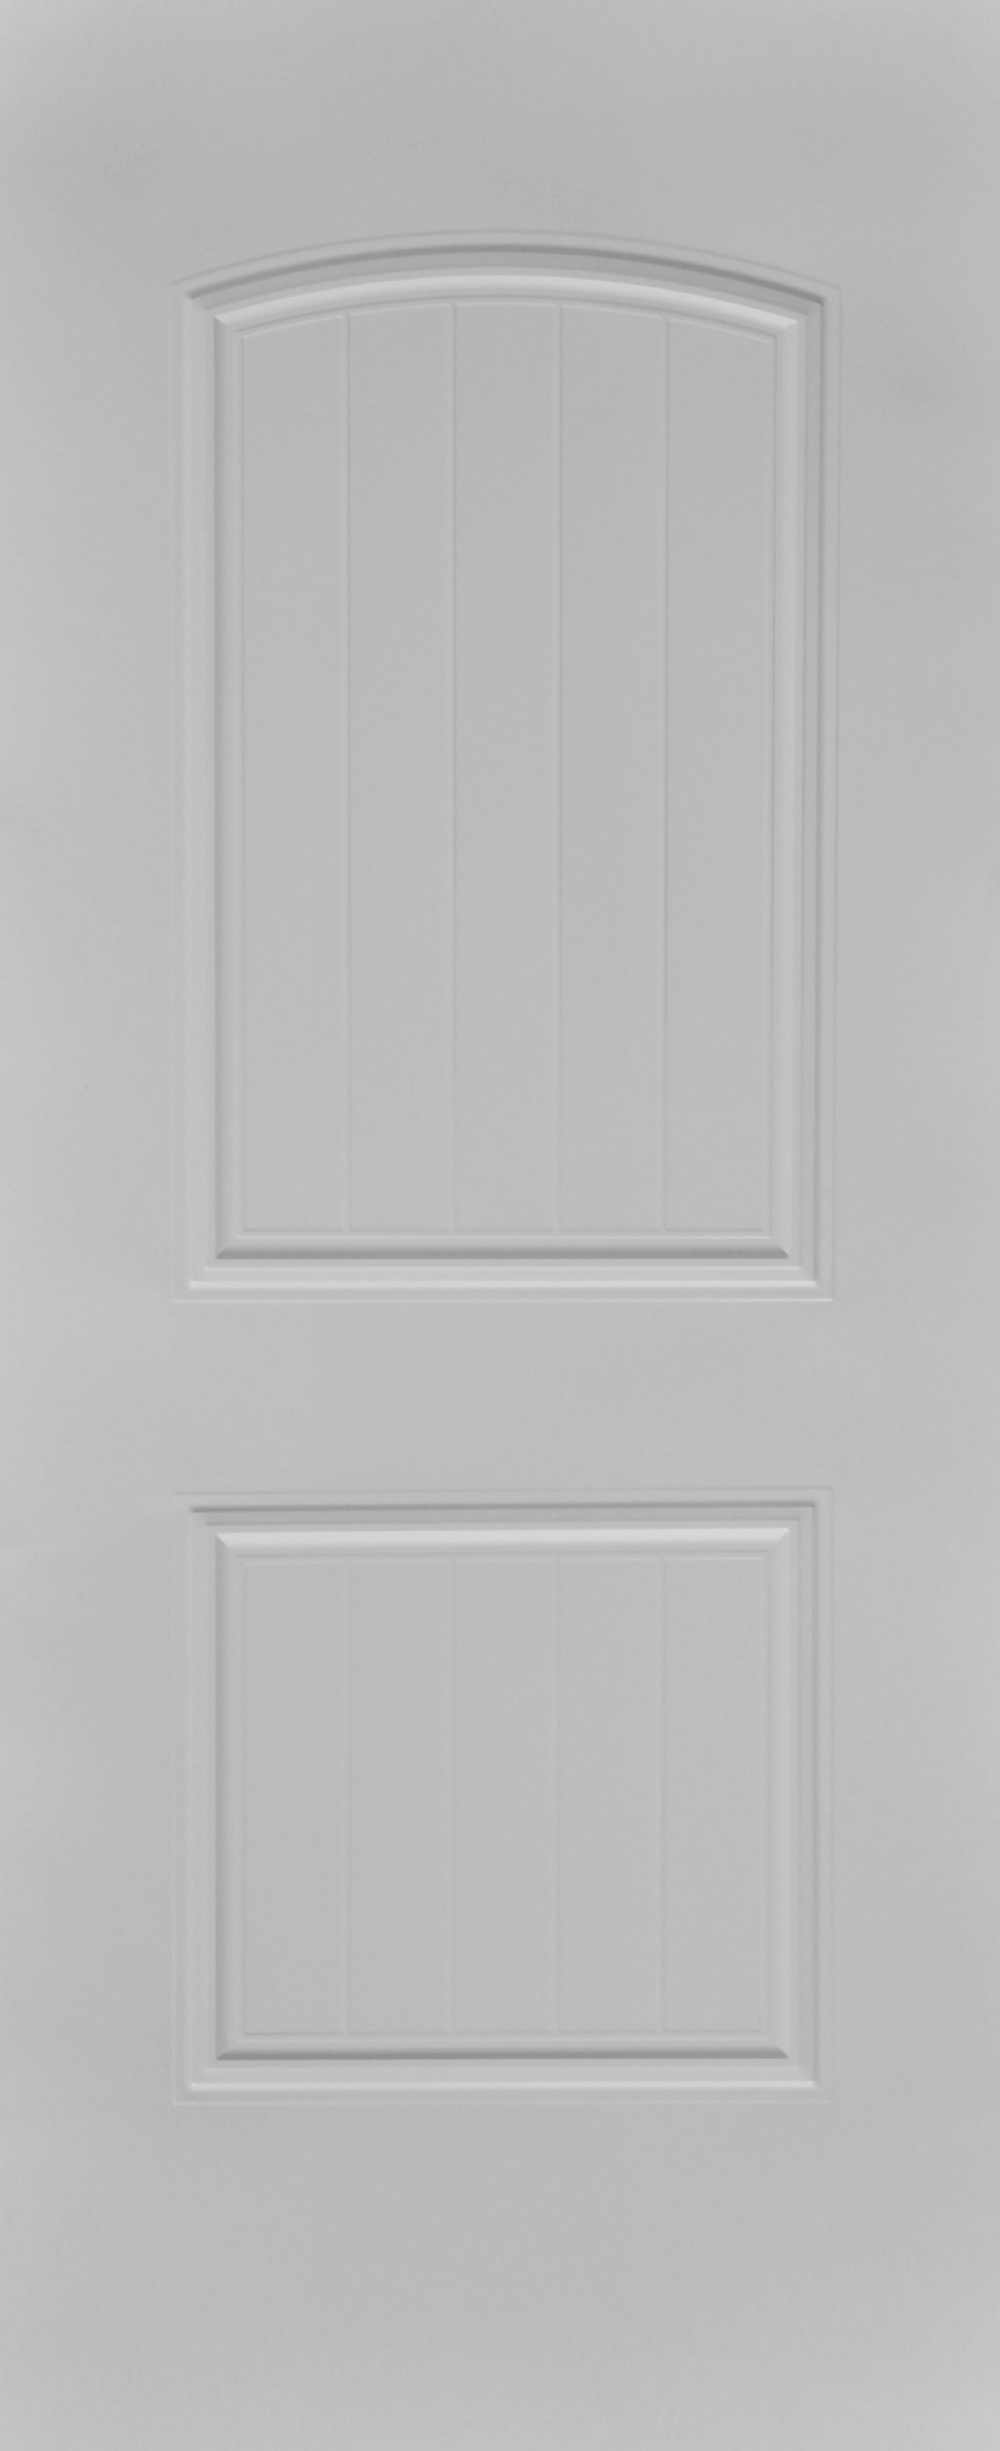 pictures of knock down door frame